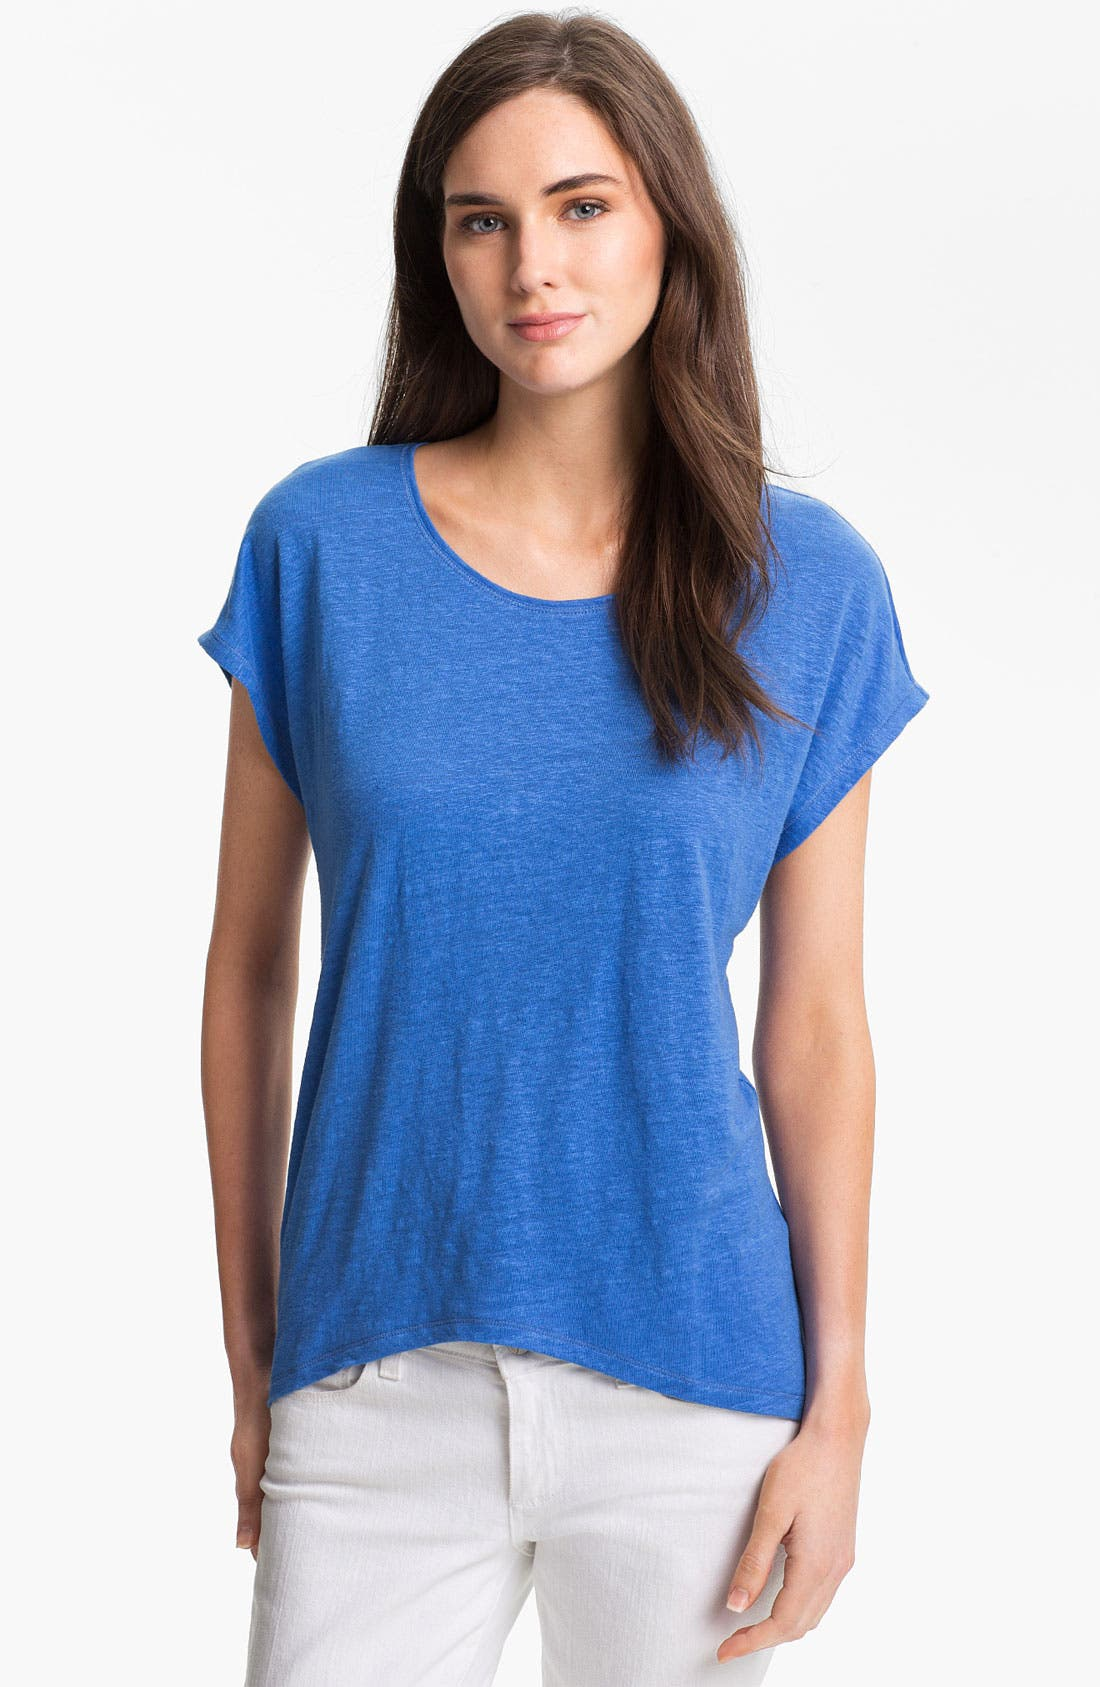 Alternate Image 1 Selected - Eileen Fisher Cap Sleeve Linen Tee (Petite)